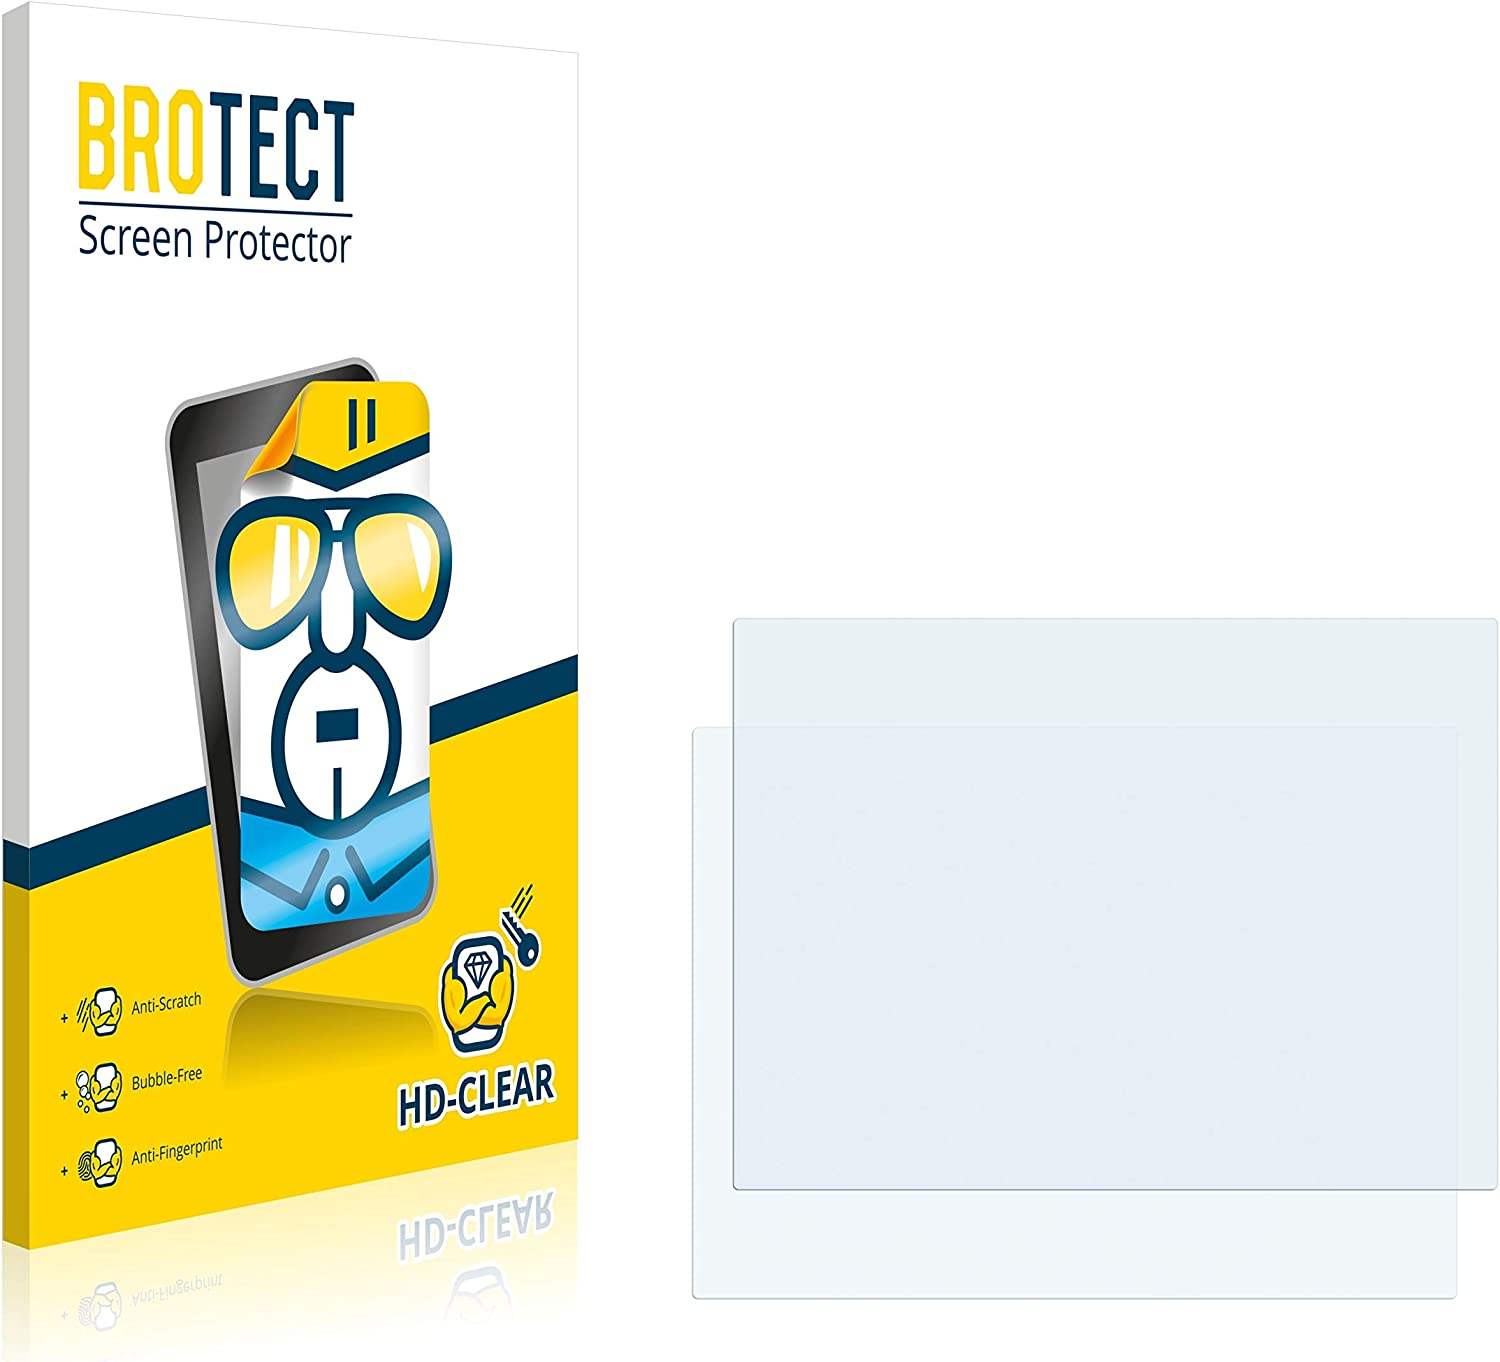 HD-Clear Protection Film brotect 2-Pack Screen Protector compatible with Dell Inspiron 7000 2009 13.3